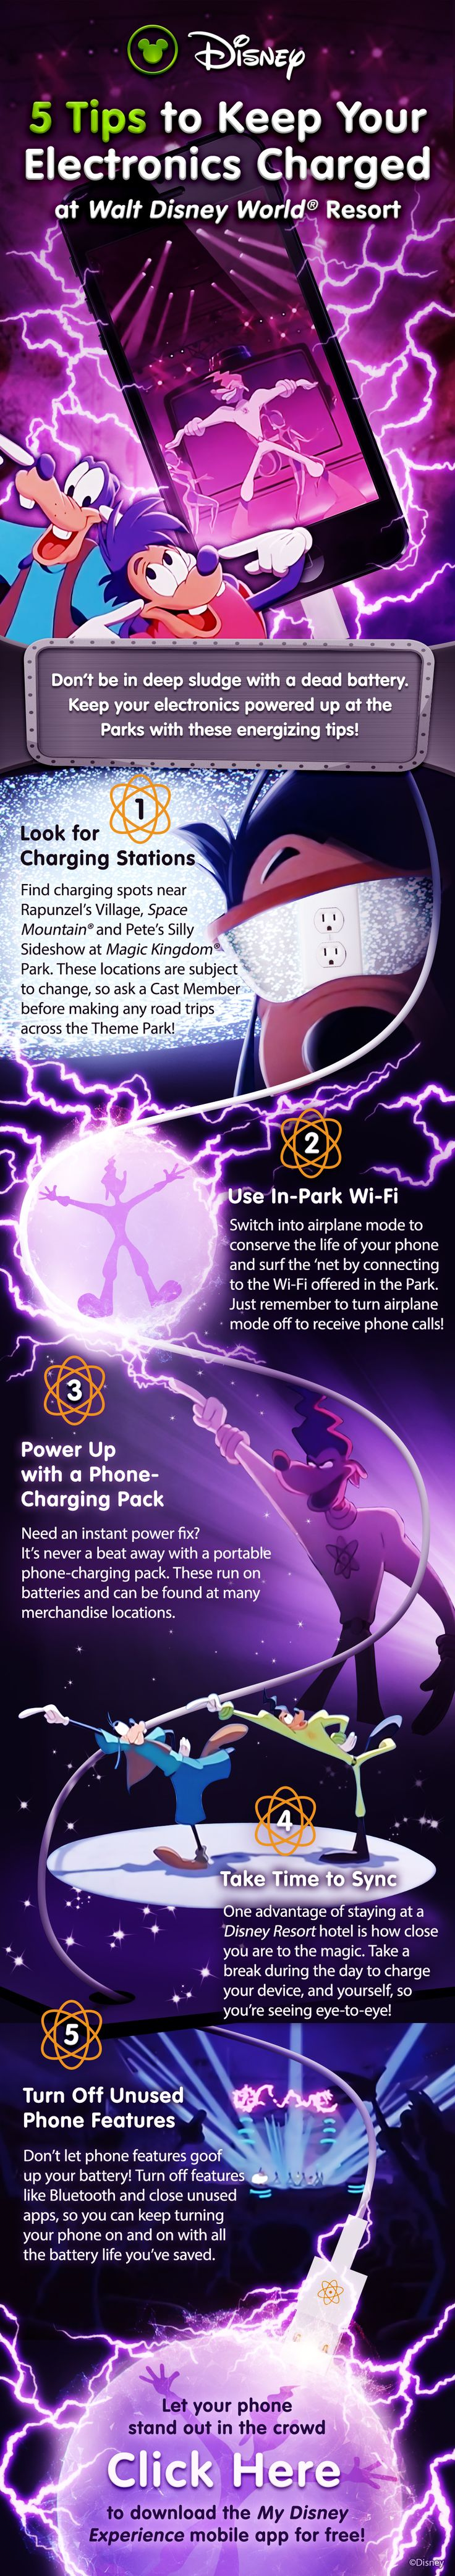 5 tips to keep your electronics charged during your Walt Disney World vacation!